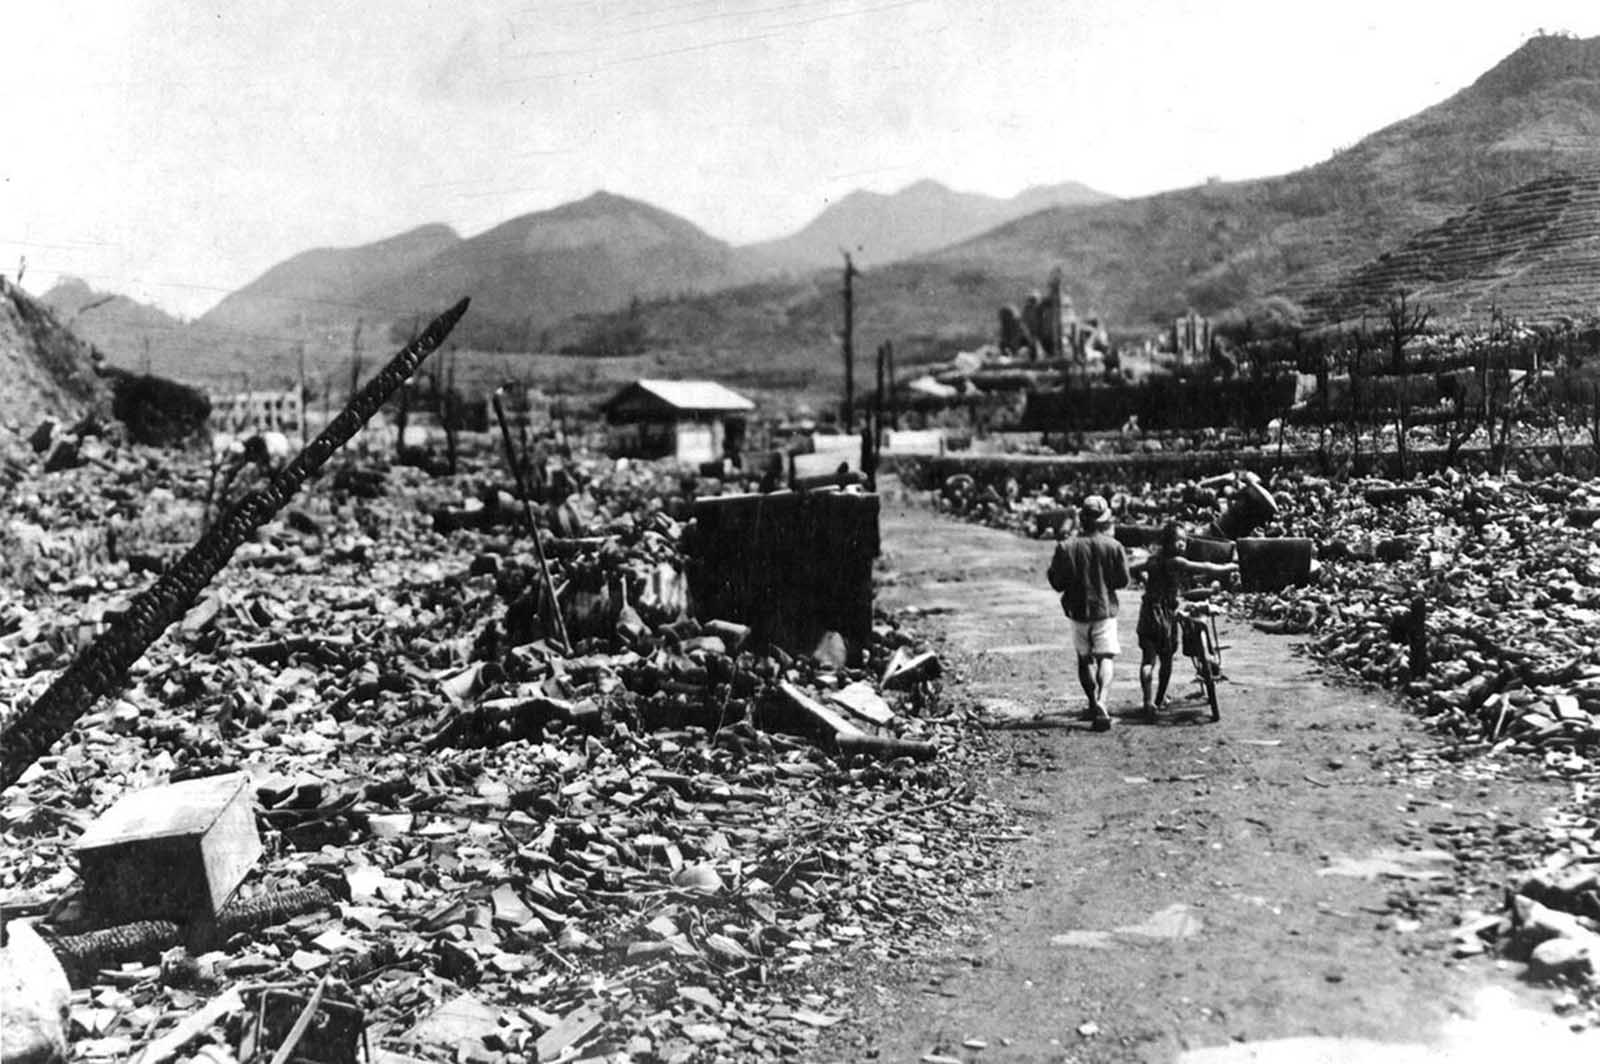 People walk through the charred ruins of Nagasaki, shortly after an atomic bomb destroyed much of the city. The explosion generated heat estimated at 3,900 degrees Celsius (4,200 K, 7,000 °F).